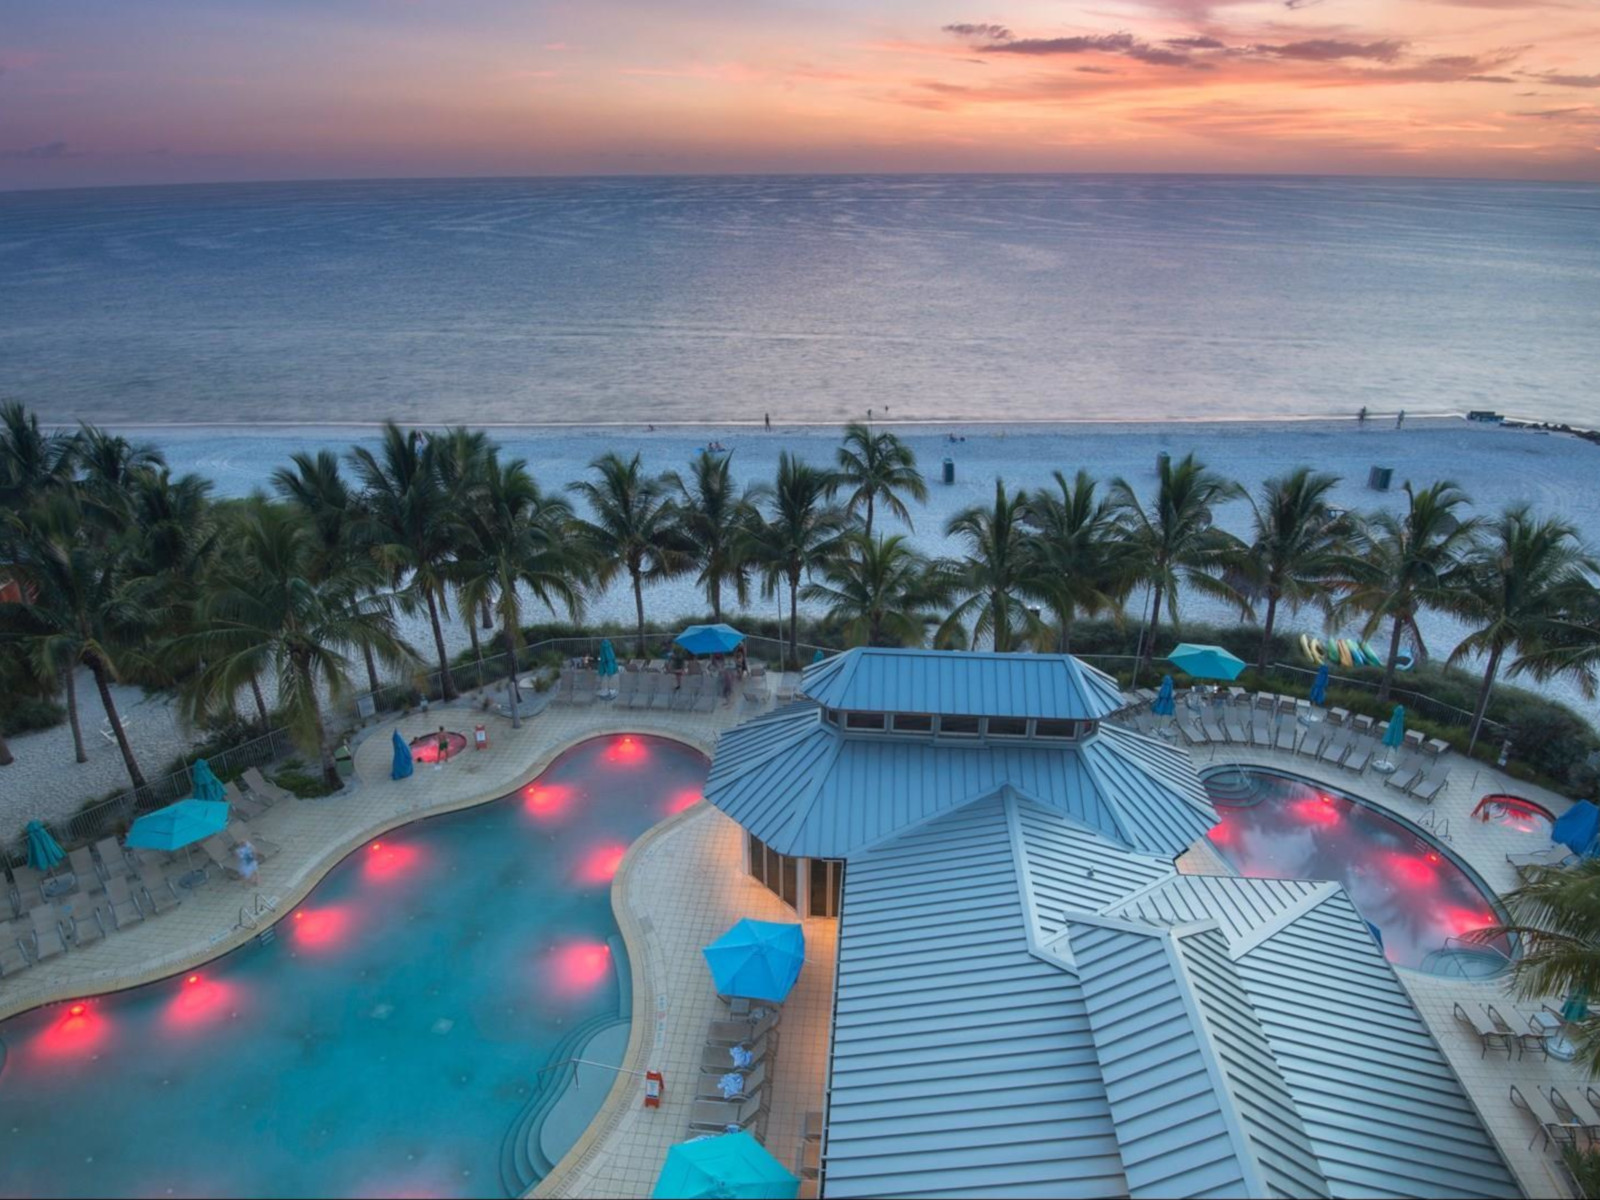 Naples Beach Hotel & Golf Club - one of the best tennis resorts for your tennis holidays in Florida